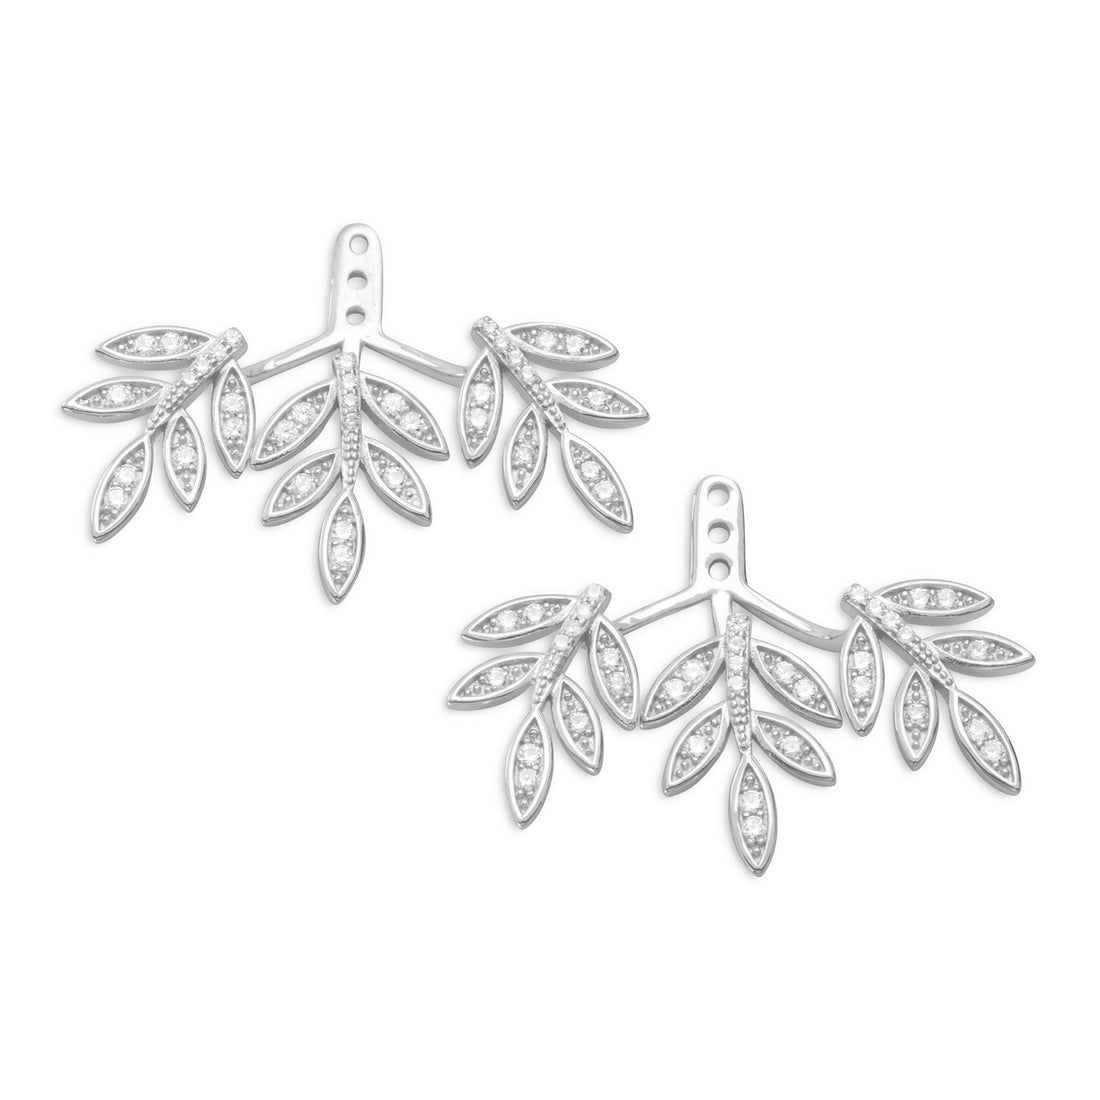 Rhodium Plated Signity CZ Earring Backs in Branch Design